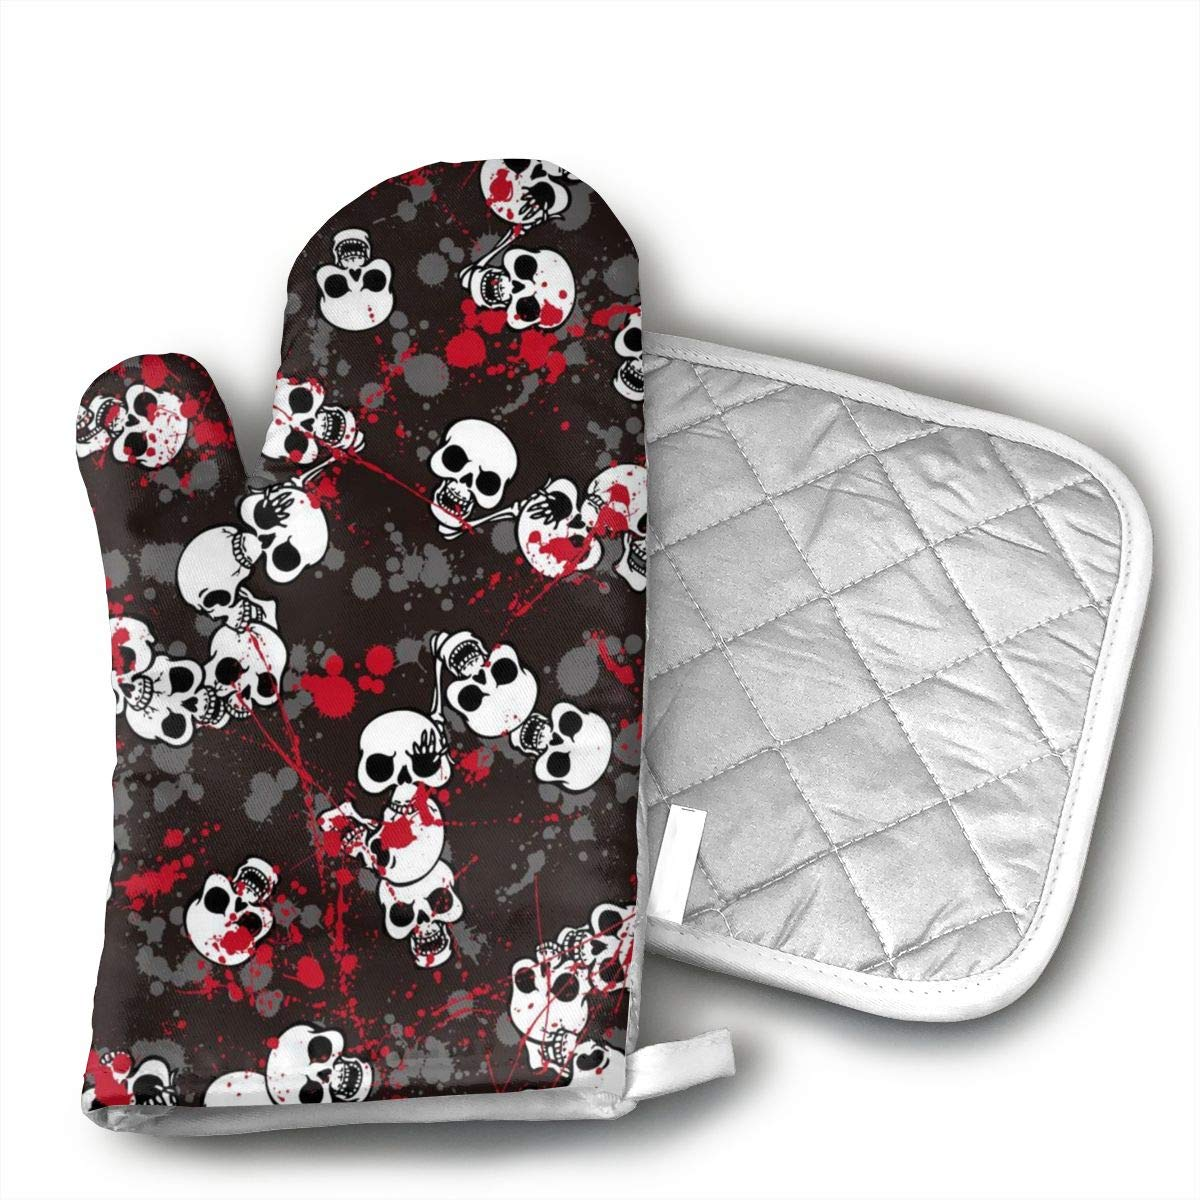 Ydsgjds Bloody Skull Oven Mitts and BBQ Gloves Pot Holders, Heat Resistant Mitts for Finger Hand Wrist Protection with Inner Lining, Kitchen Gloves for Grilling Machine Baking Grilling with Non-Slip